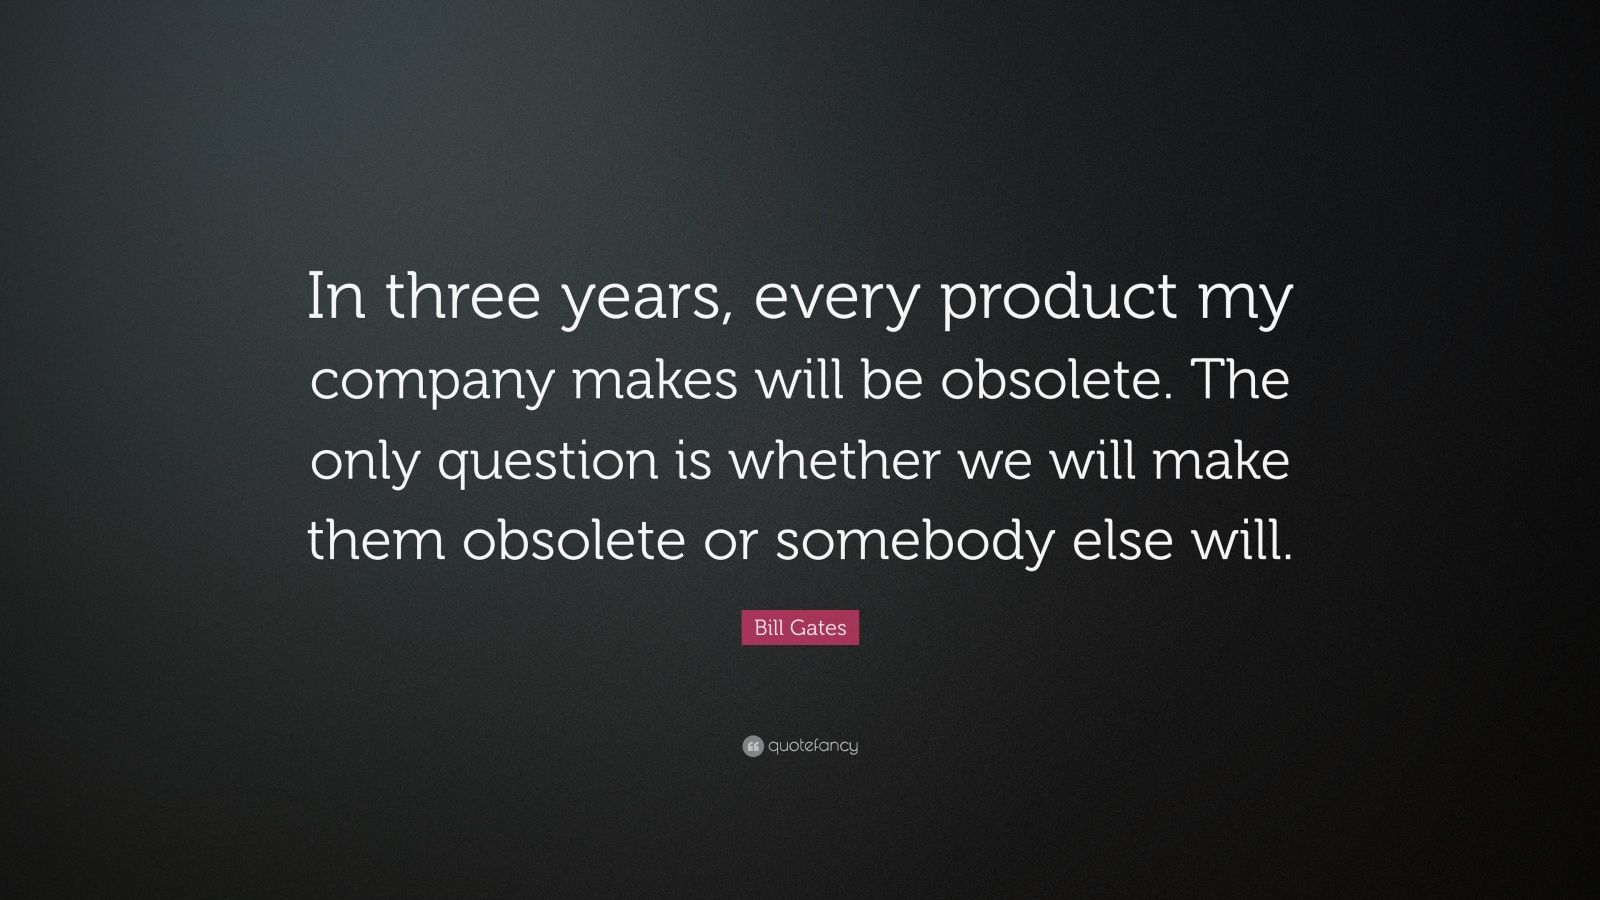 """Bill Gates Quote: """"In three years, every product my company makes will be obsolete. The only question is whether we will make them obsolete or somebody else will."""""""